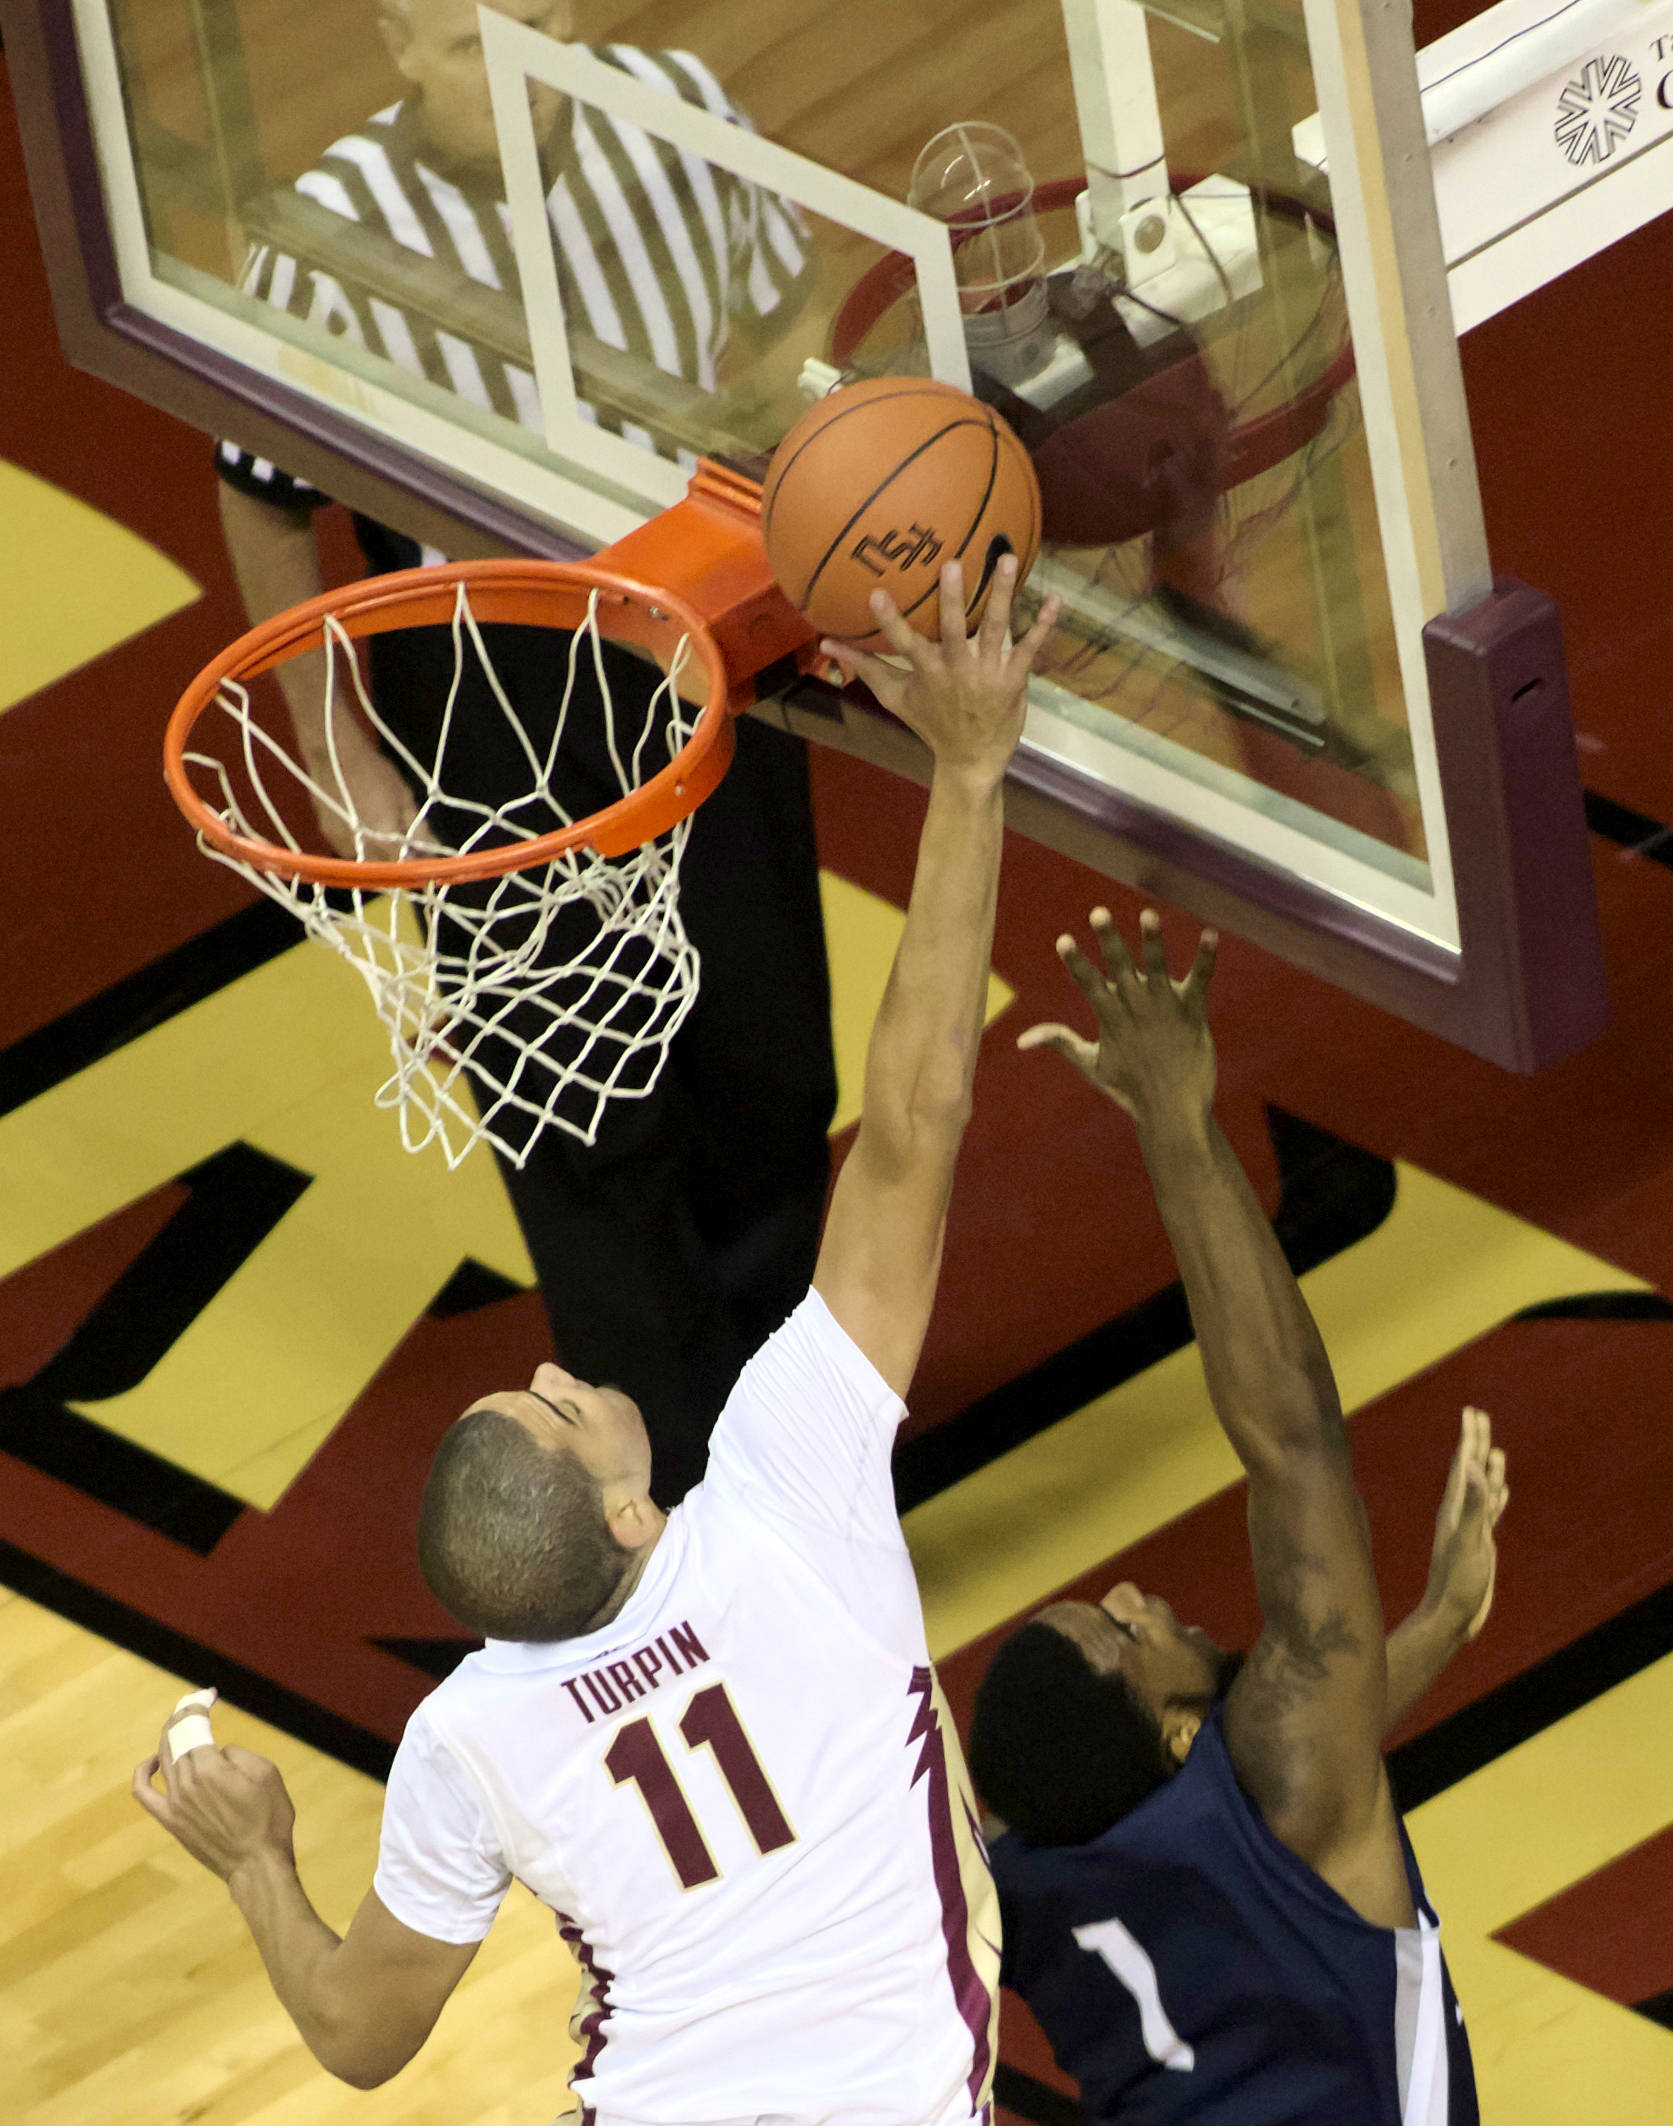 Kiel Turpin (11), FSU vs No. Fla, 11/21/12. (Photo by Steve Musco)